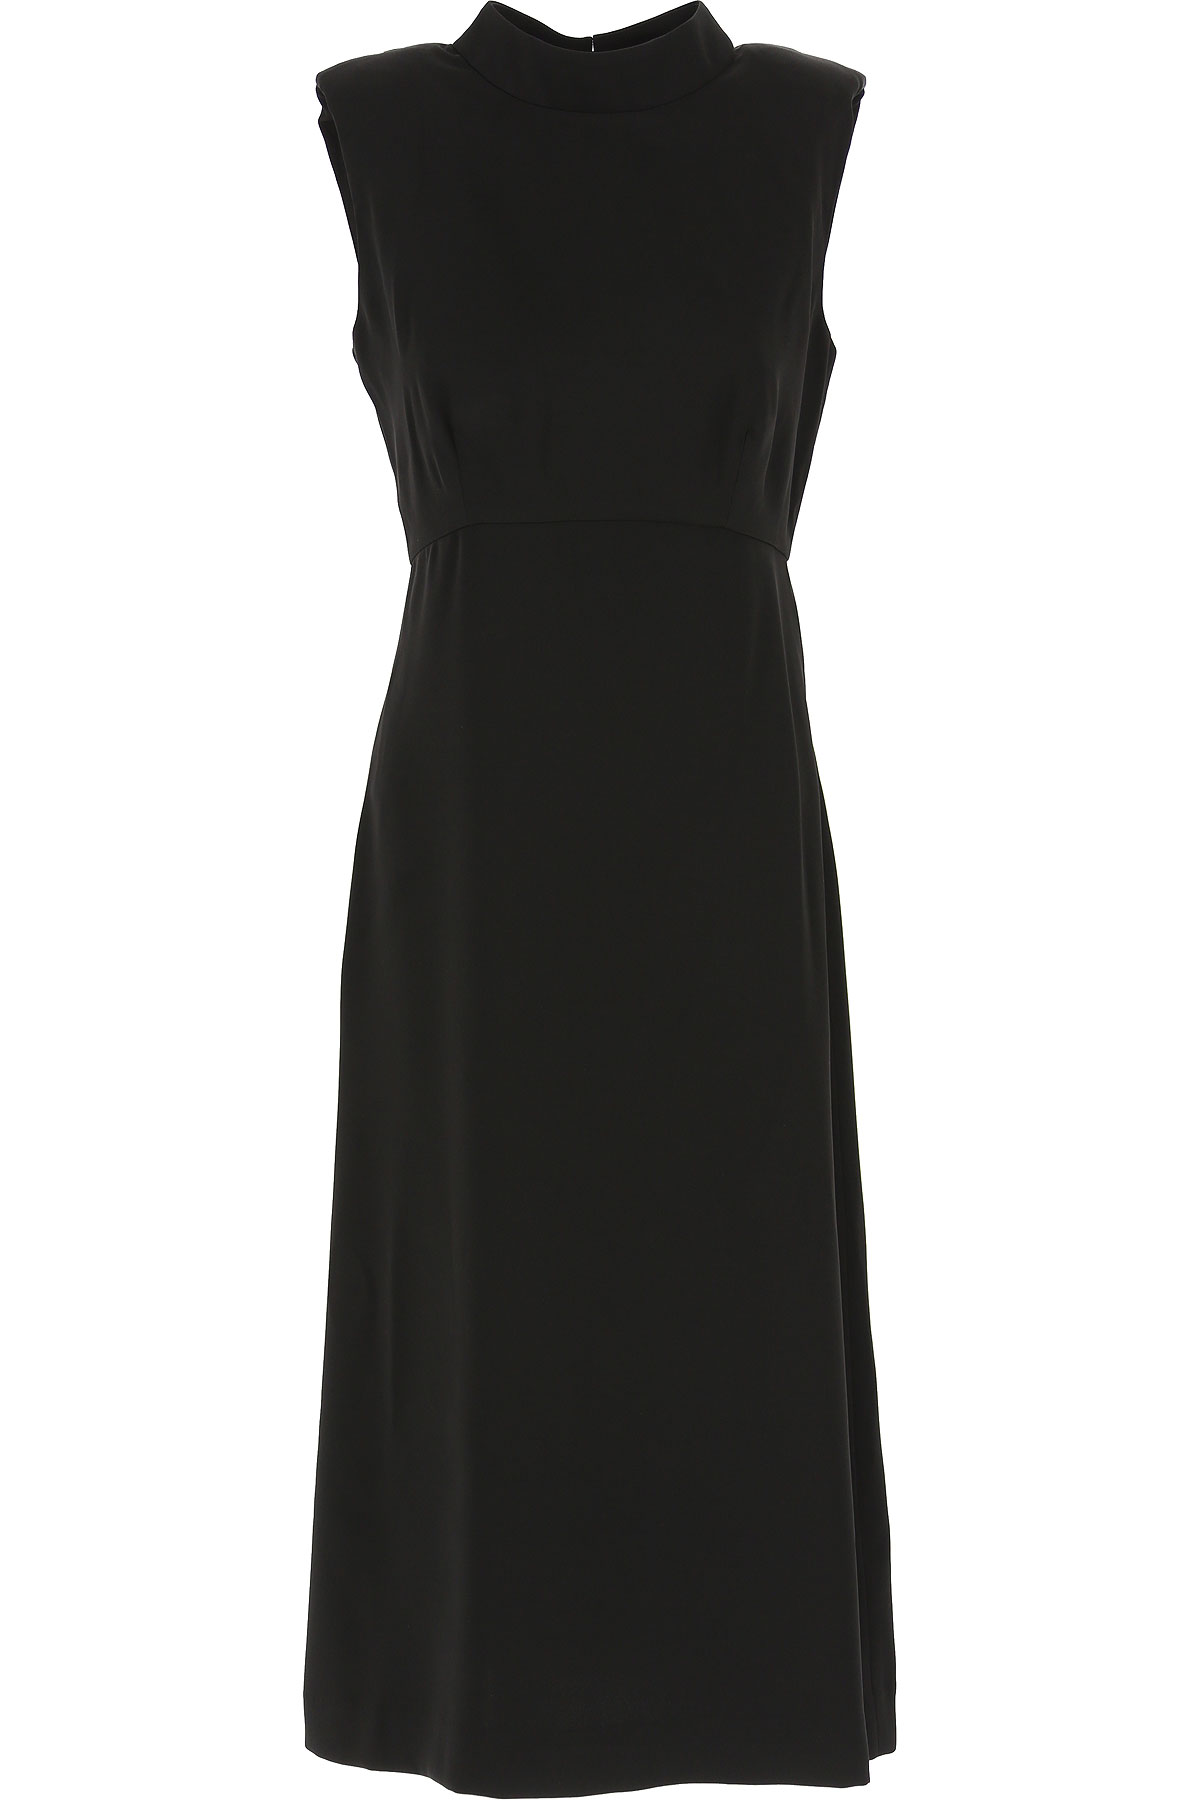 Guess Dress for Women, Evening Cocktail Party On Sale, Black, polyester, 2019, 2 4 6 8